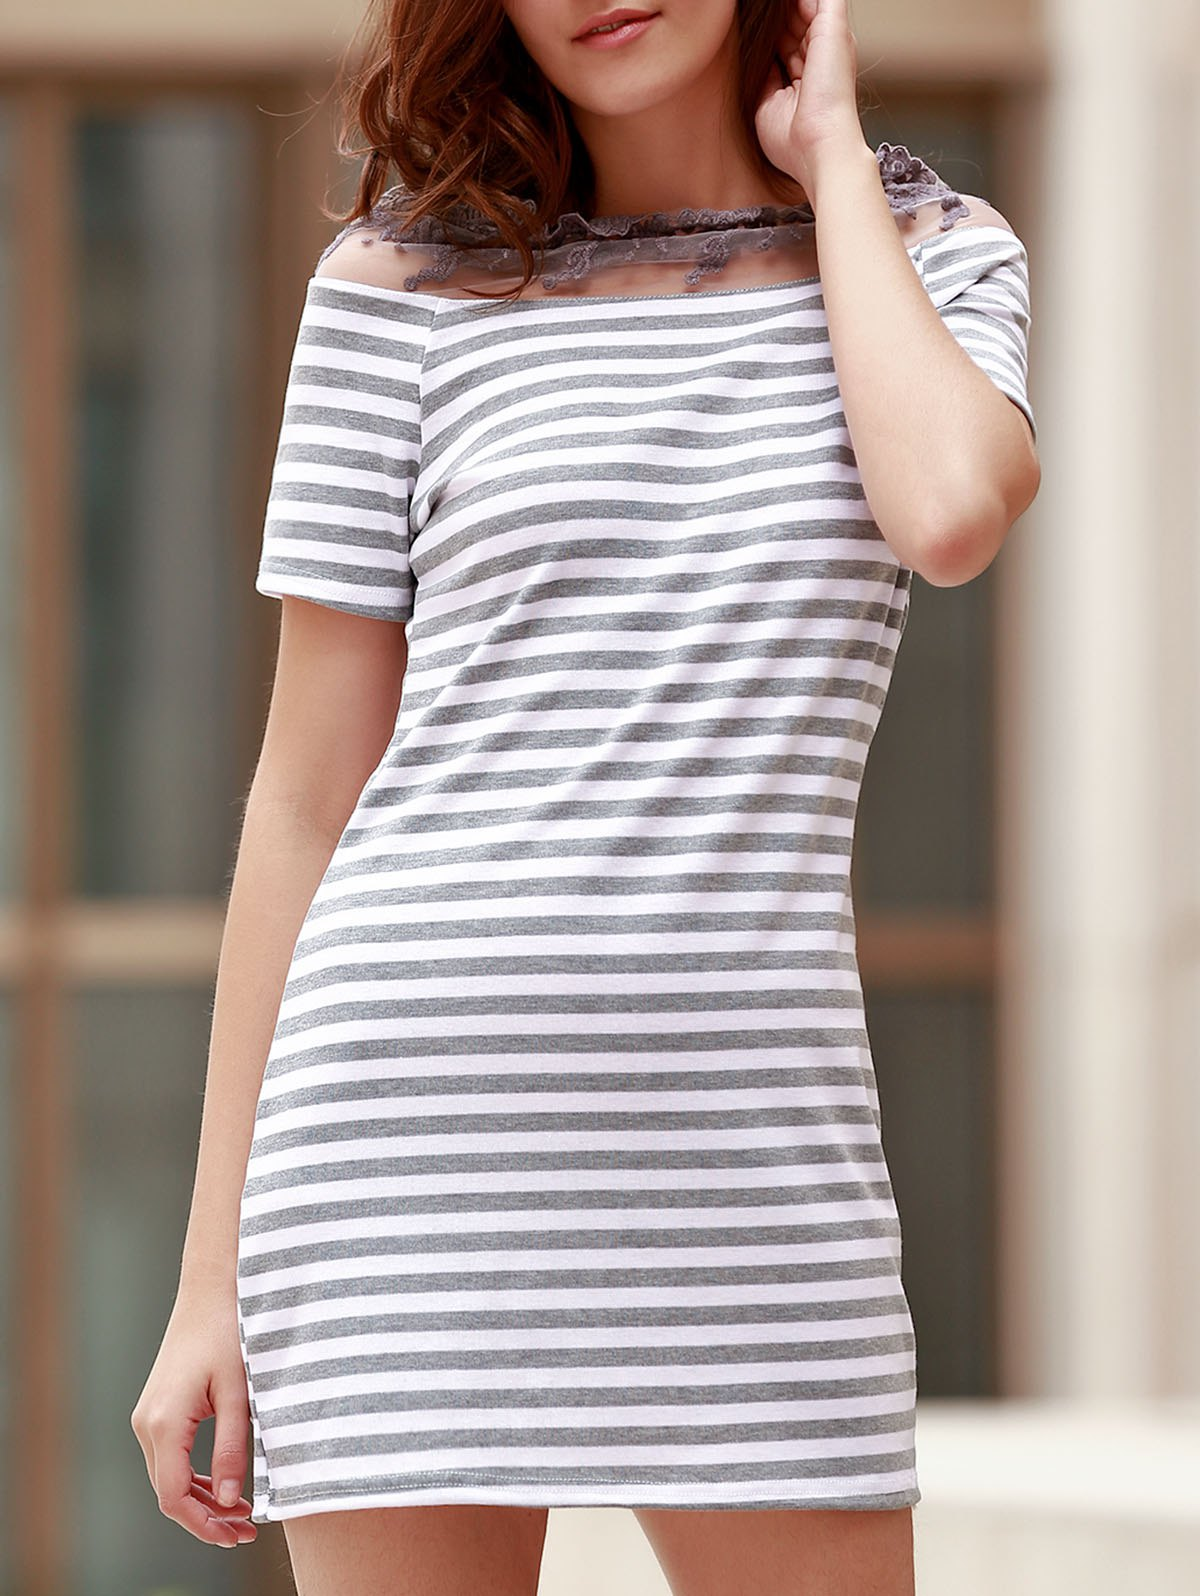 Stylish Short Sleeve Striped Lace Floral Spliced See-Through Women's Dress